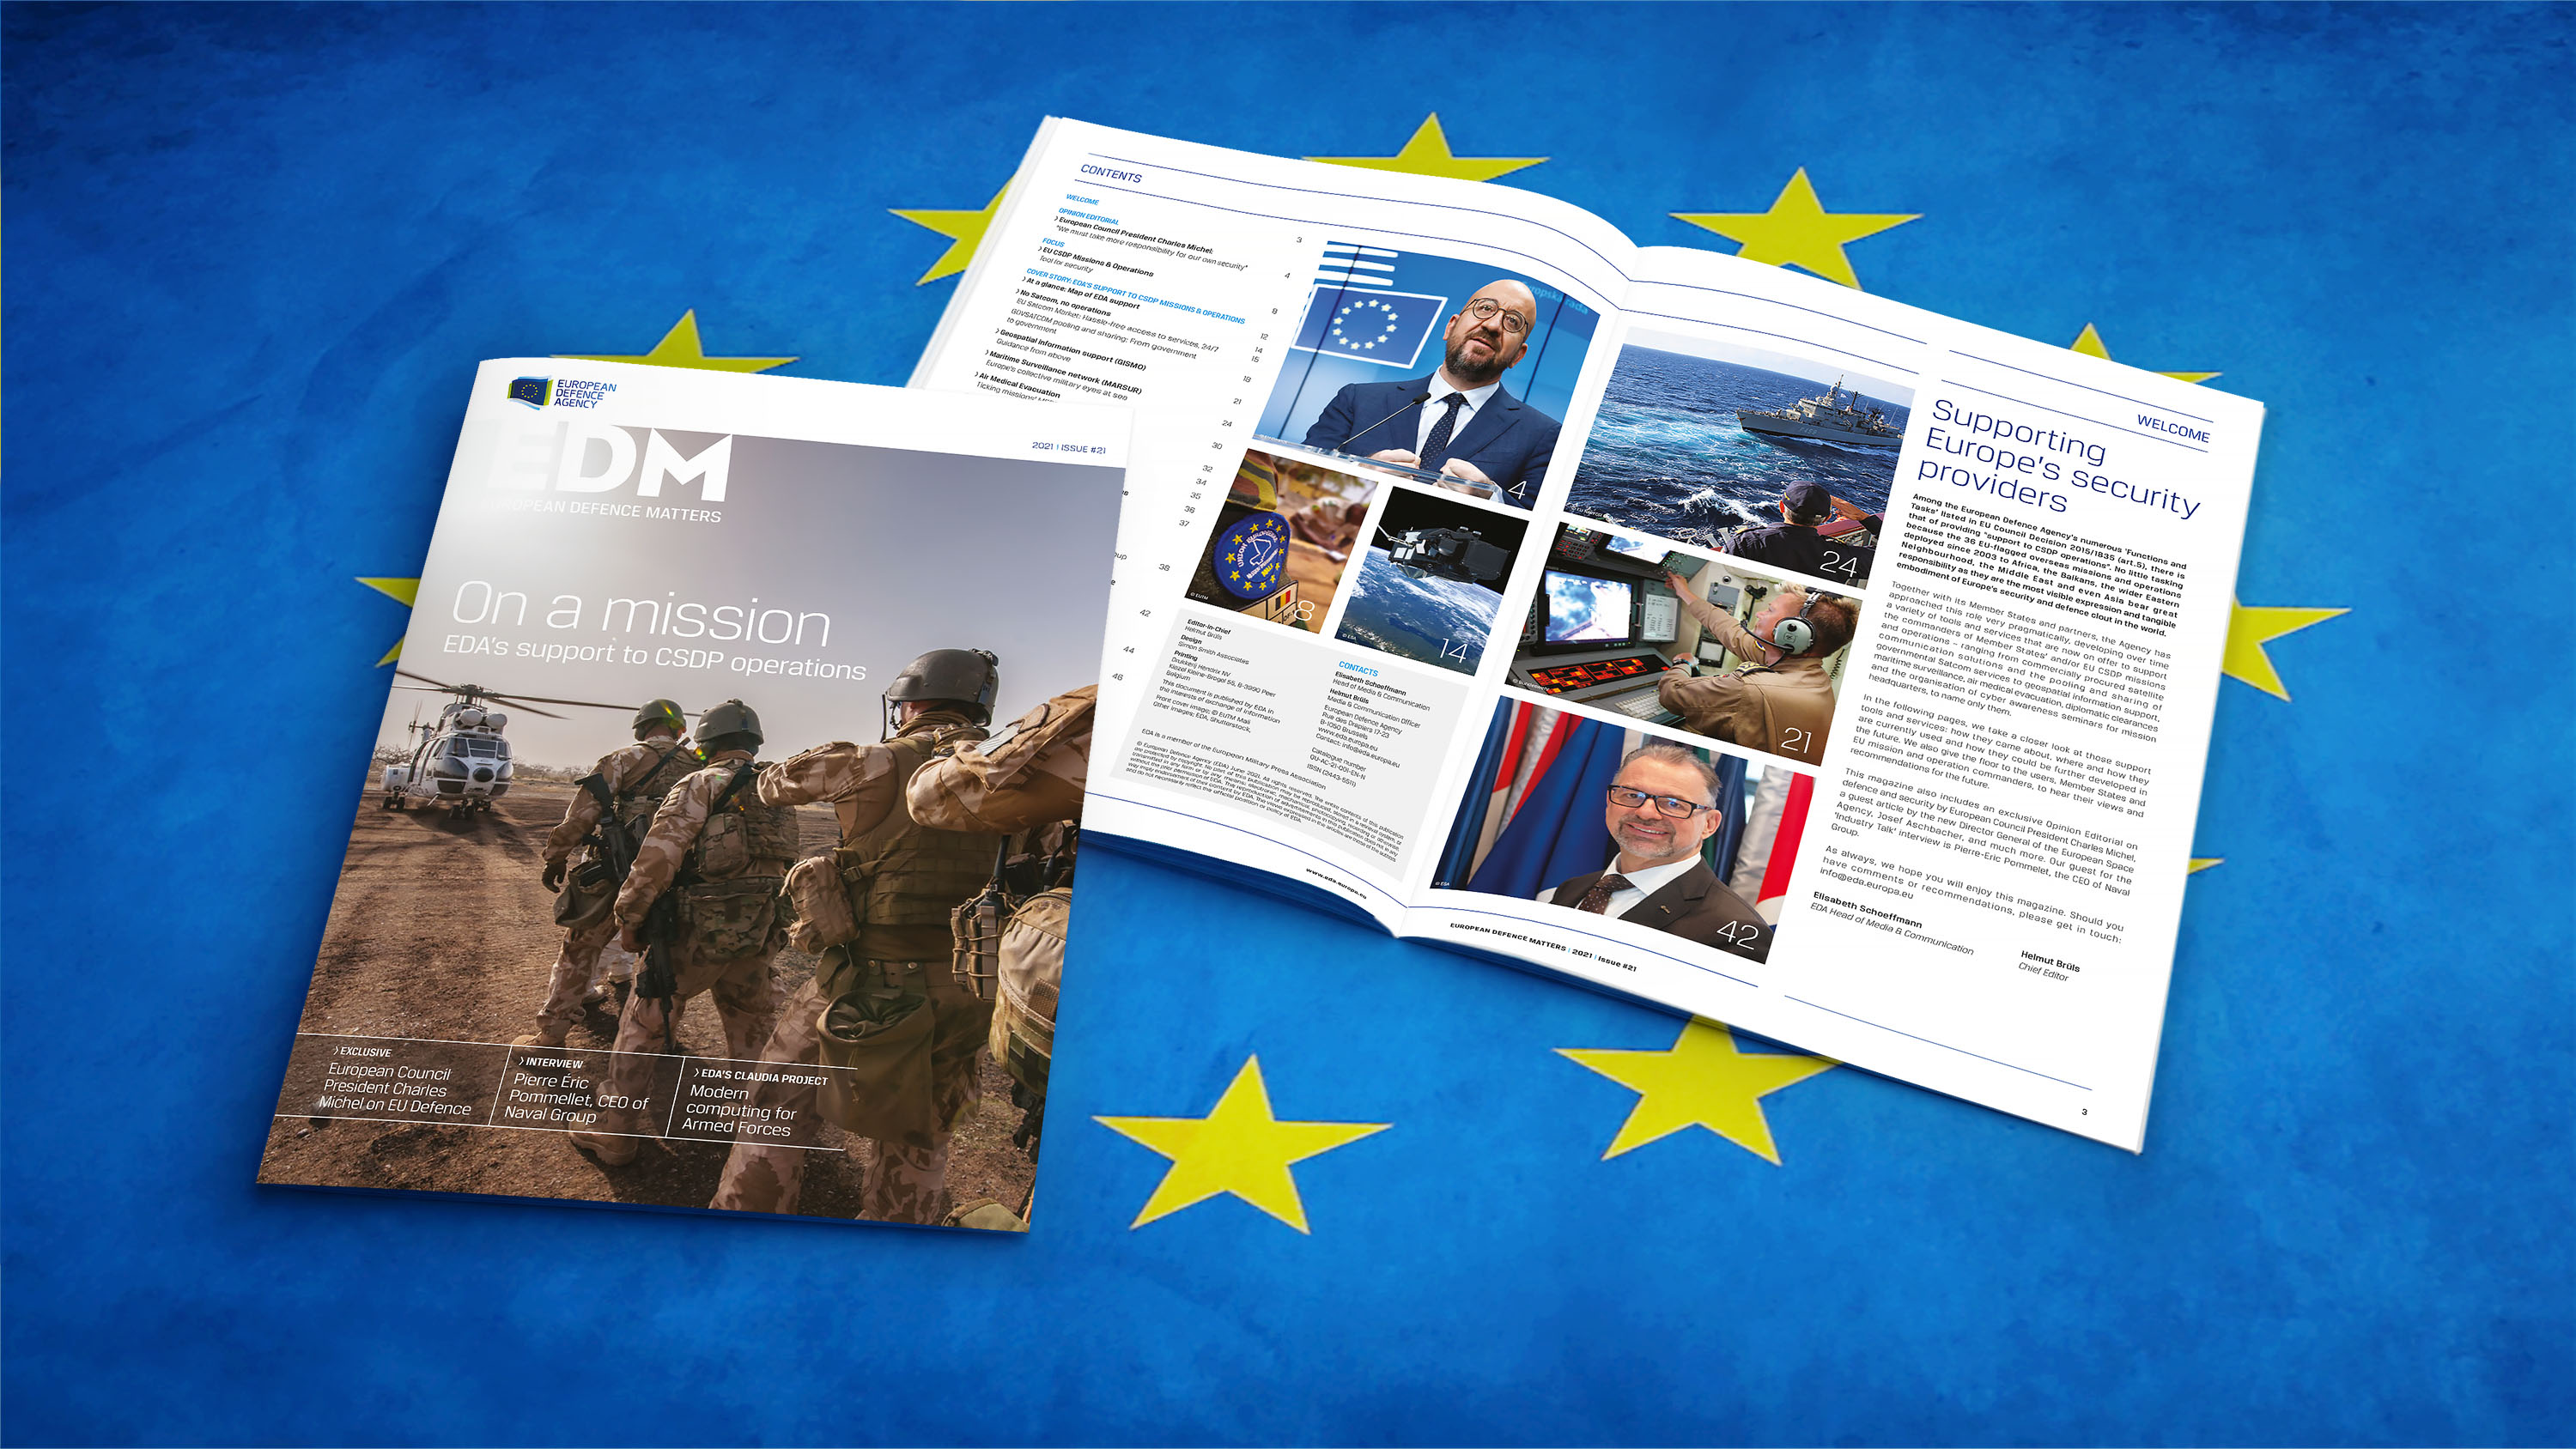 Focus on EDA support to EU missions & operations: our new magazine is out!